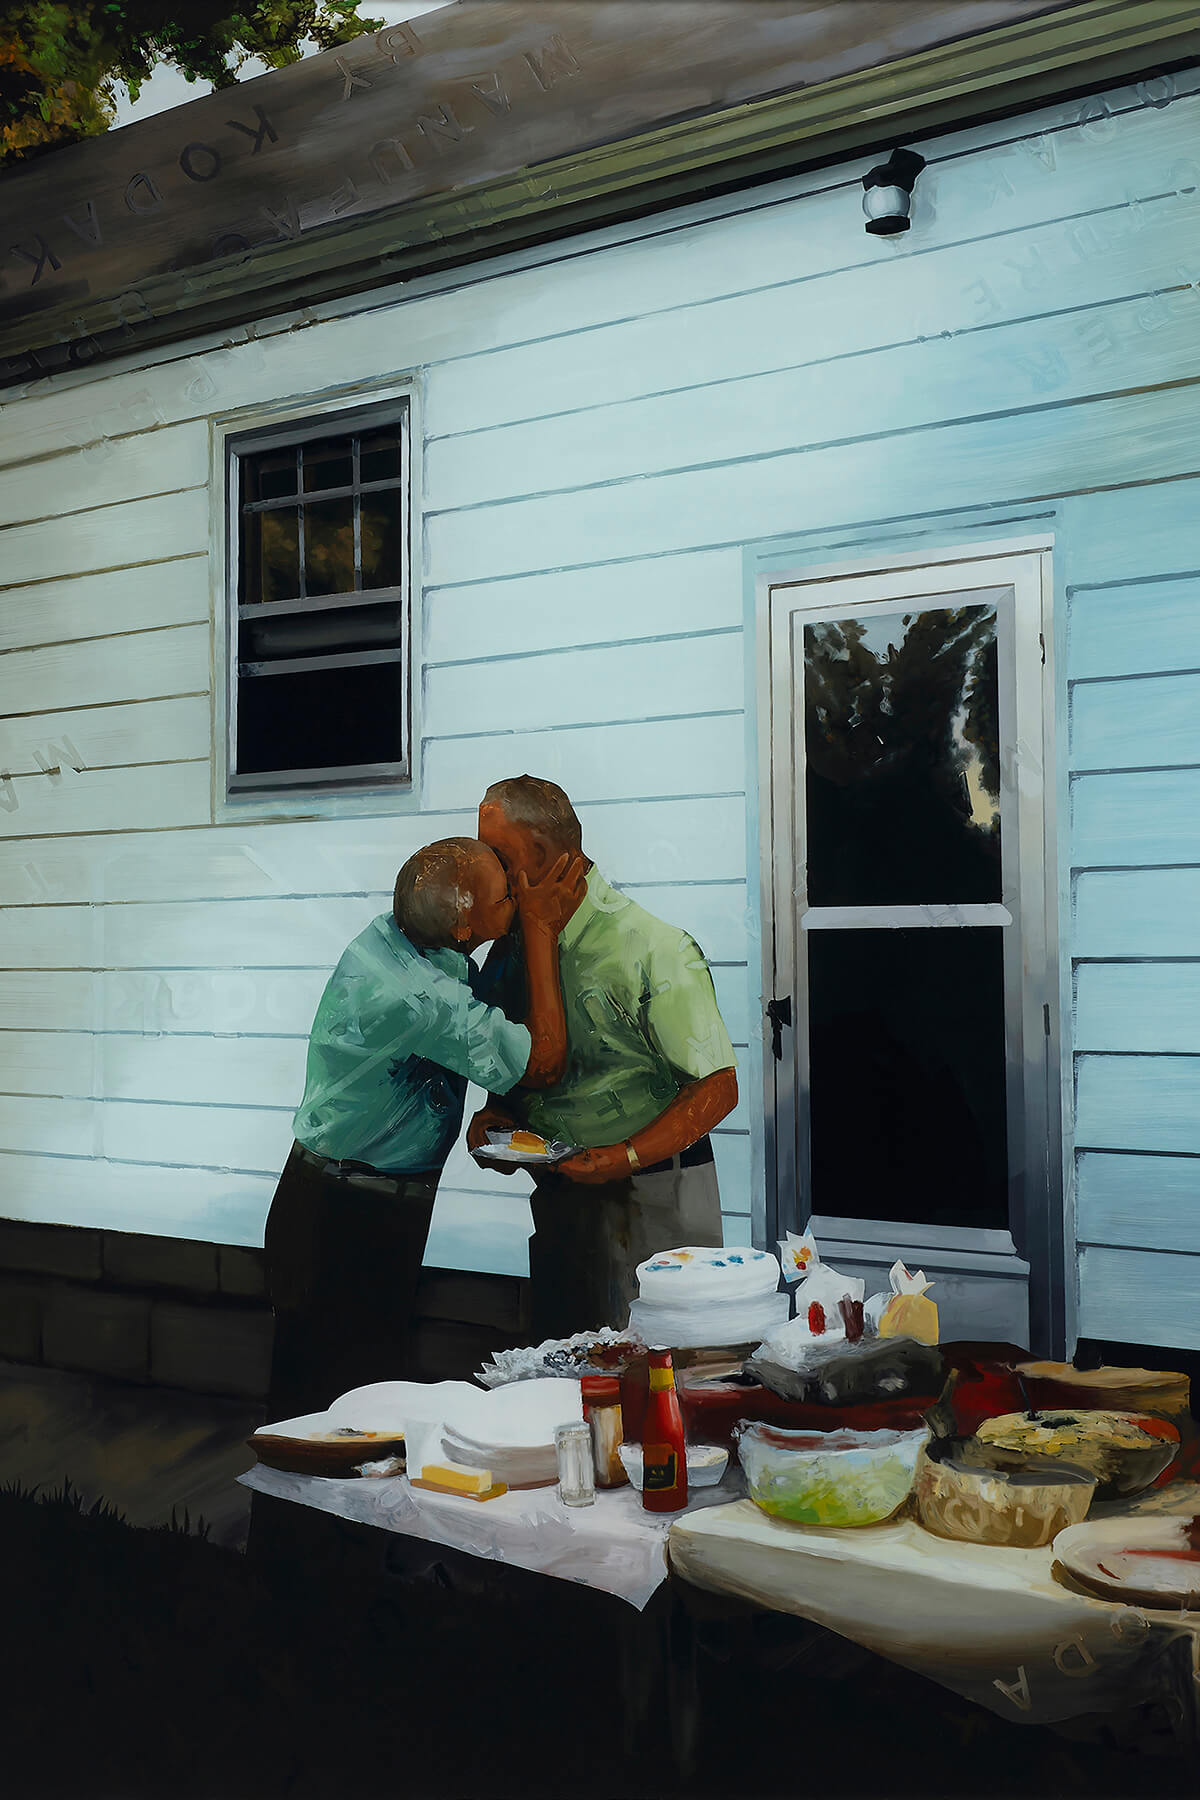 A vertically oriented photograph of two older white men kissing on the mouth. They are on the side of a house with white siding and a picnic table full of food.